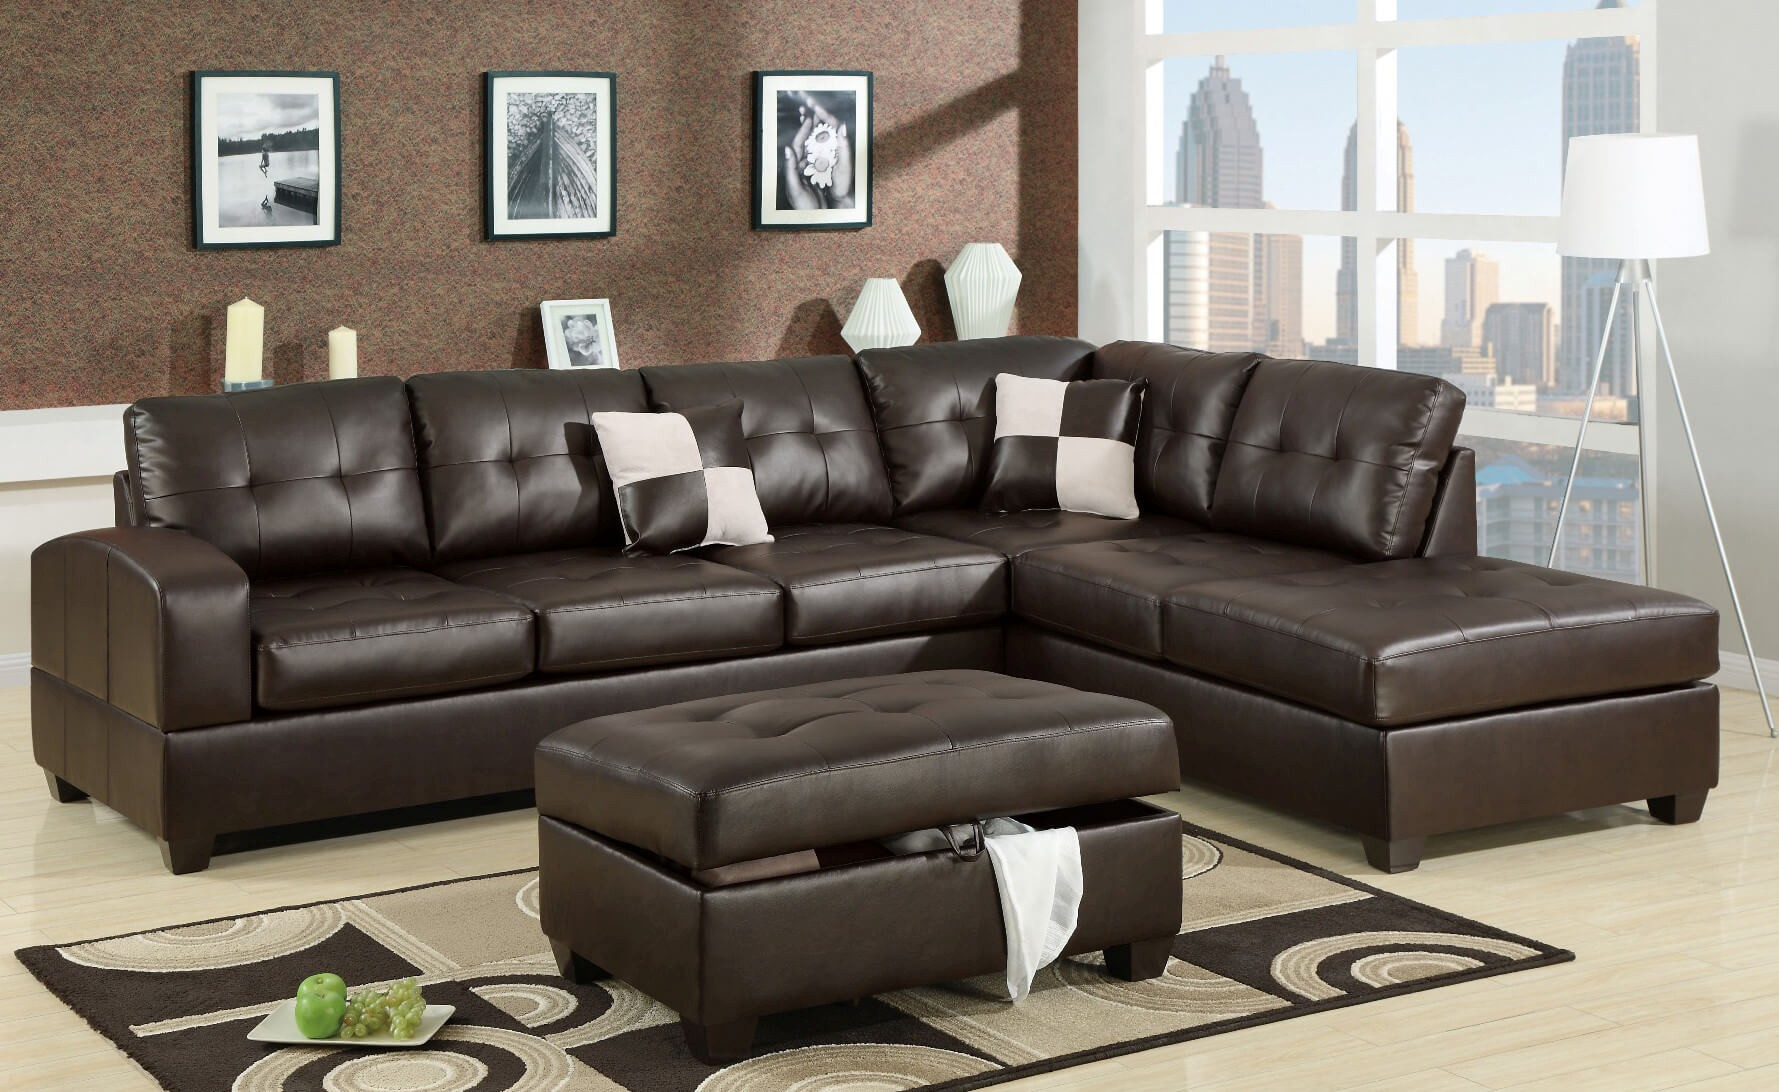 Superb cheap sectional sofas under 500 ideas